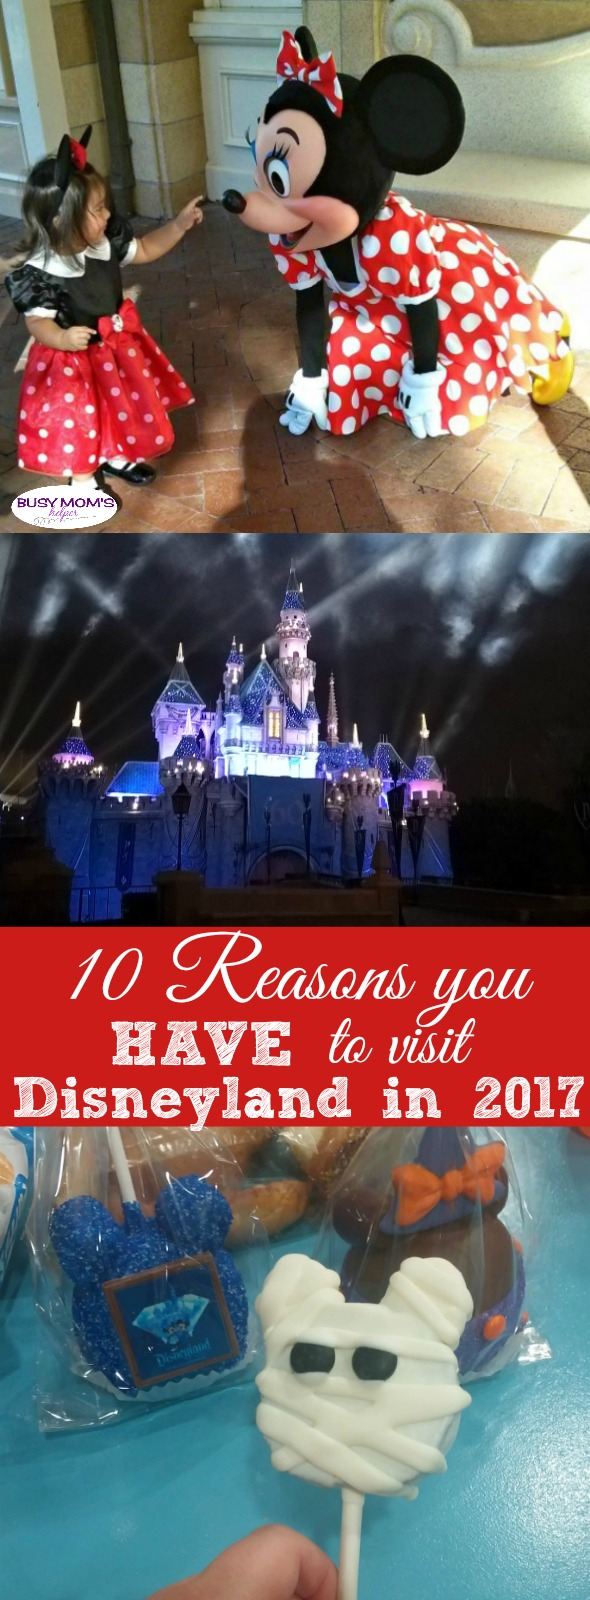 10 Reasons to Visit Disneyland in 2017